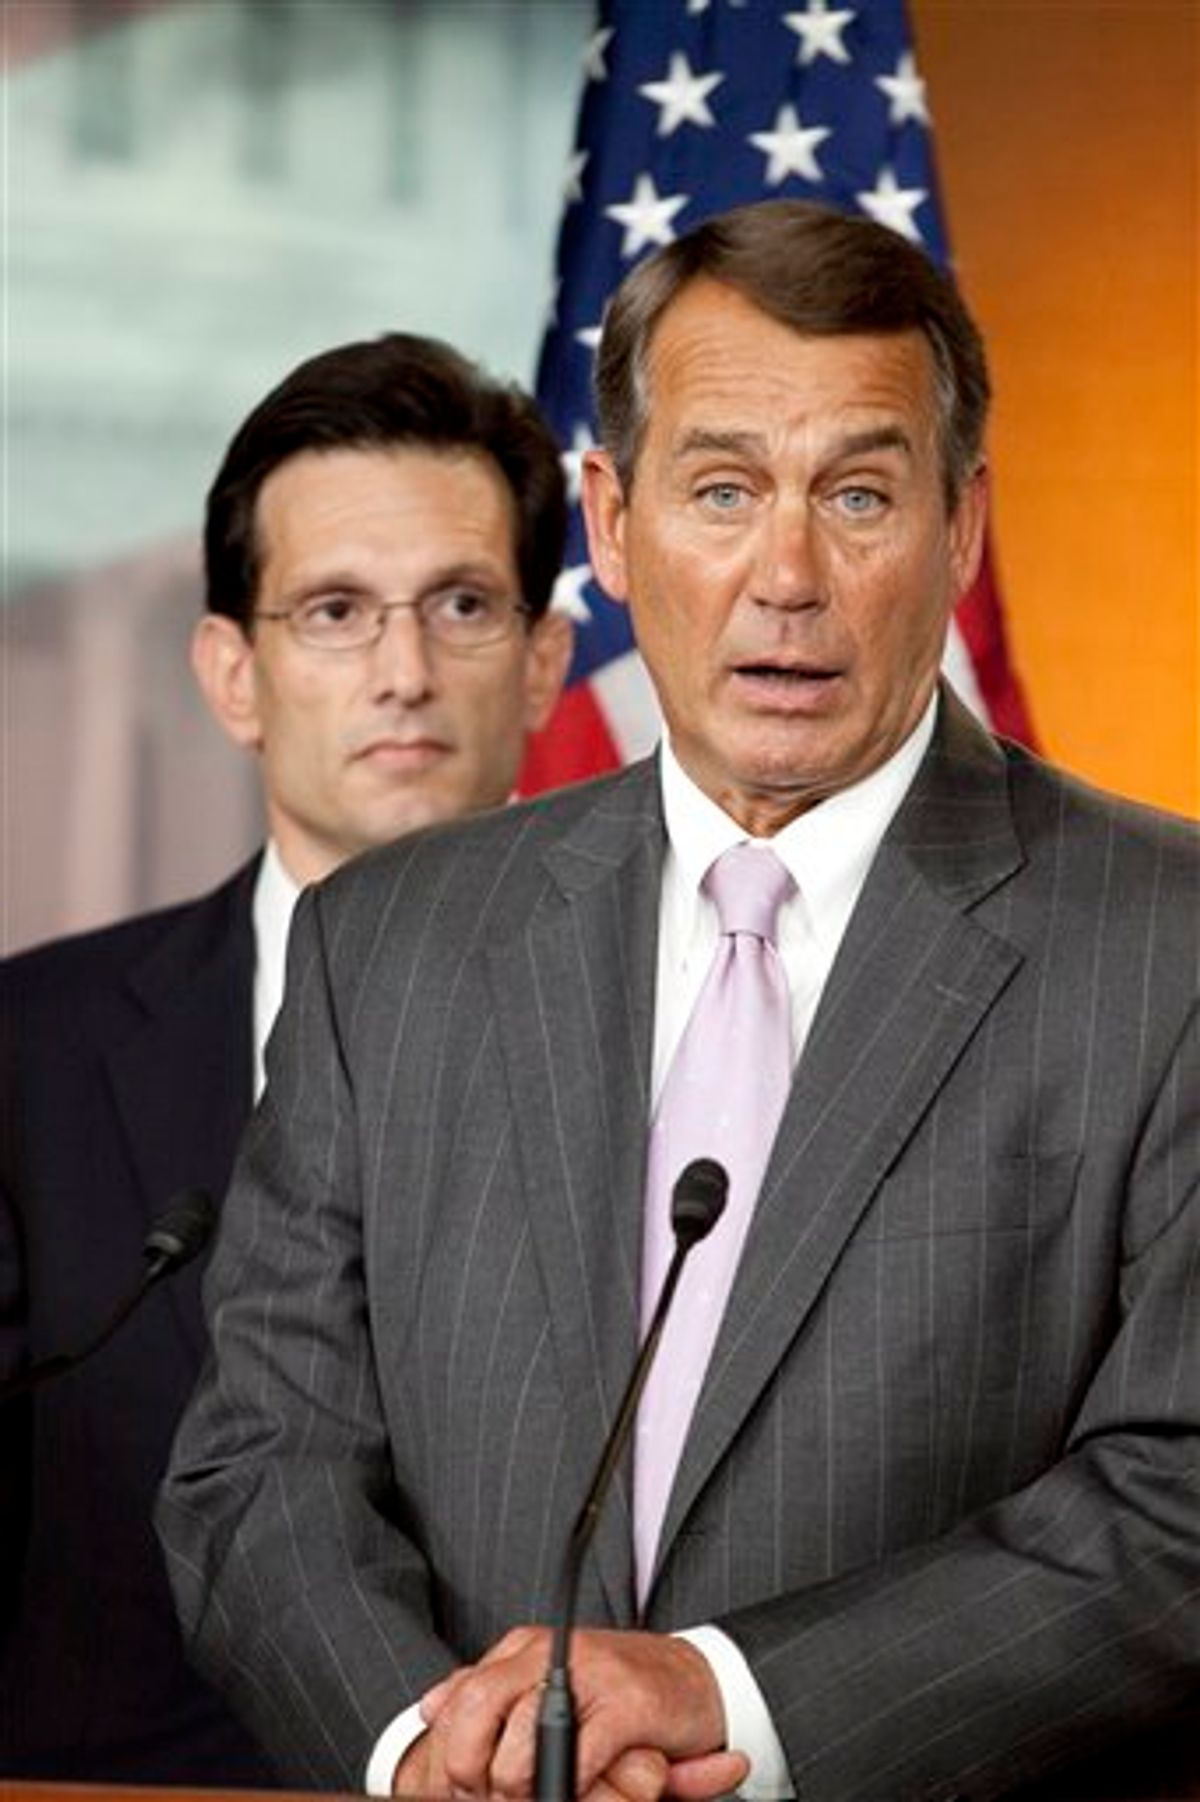 FILE - In this April 5, 2010 file photo, House Minority Leader John Boehner of Ohio, right, accompanied by House Minority Whip Eric Cantor of Va., speaks on Capitol Hill in Washington. Boehner could walk down most U.S. streets anonymously. But the perpetually tanned golf lover, who grew up in a Cincinnati family of 14, could become the next House speaker and the GOP leader of opposition to President Barack Obama.  (AP Photo/Harry Hamburg, File)  (AP)